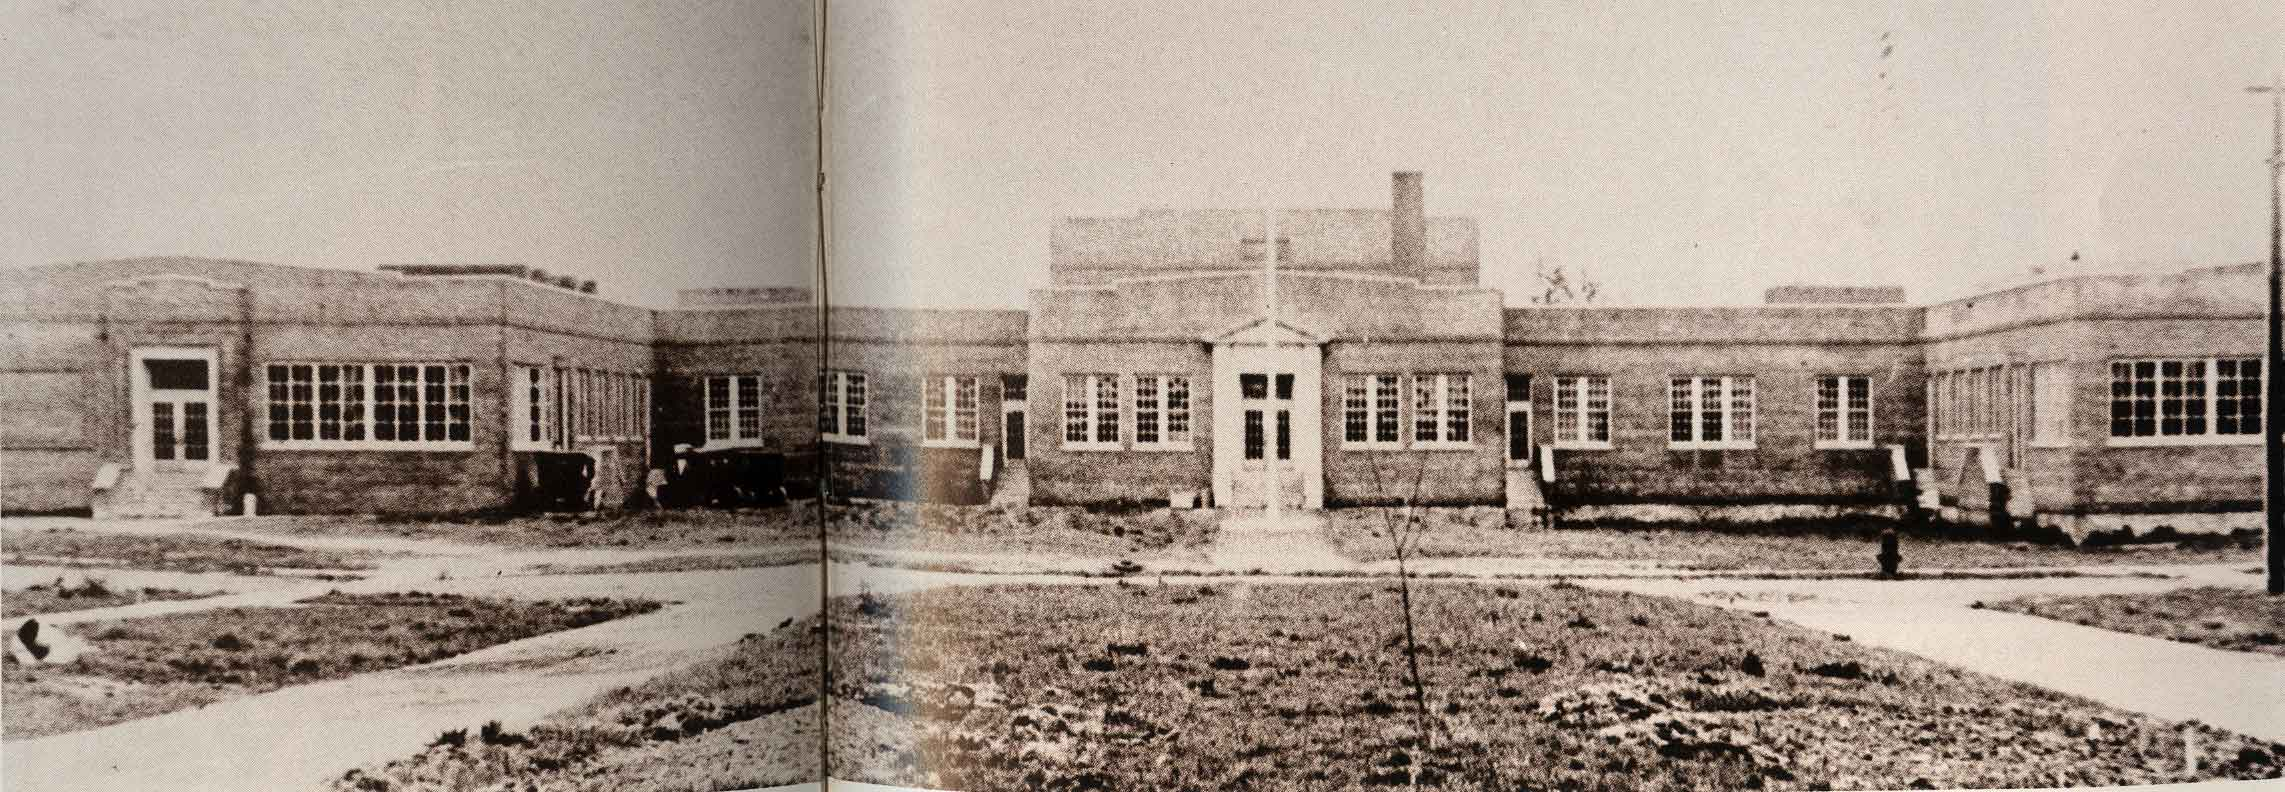 First Cradock High School